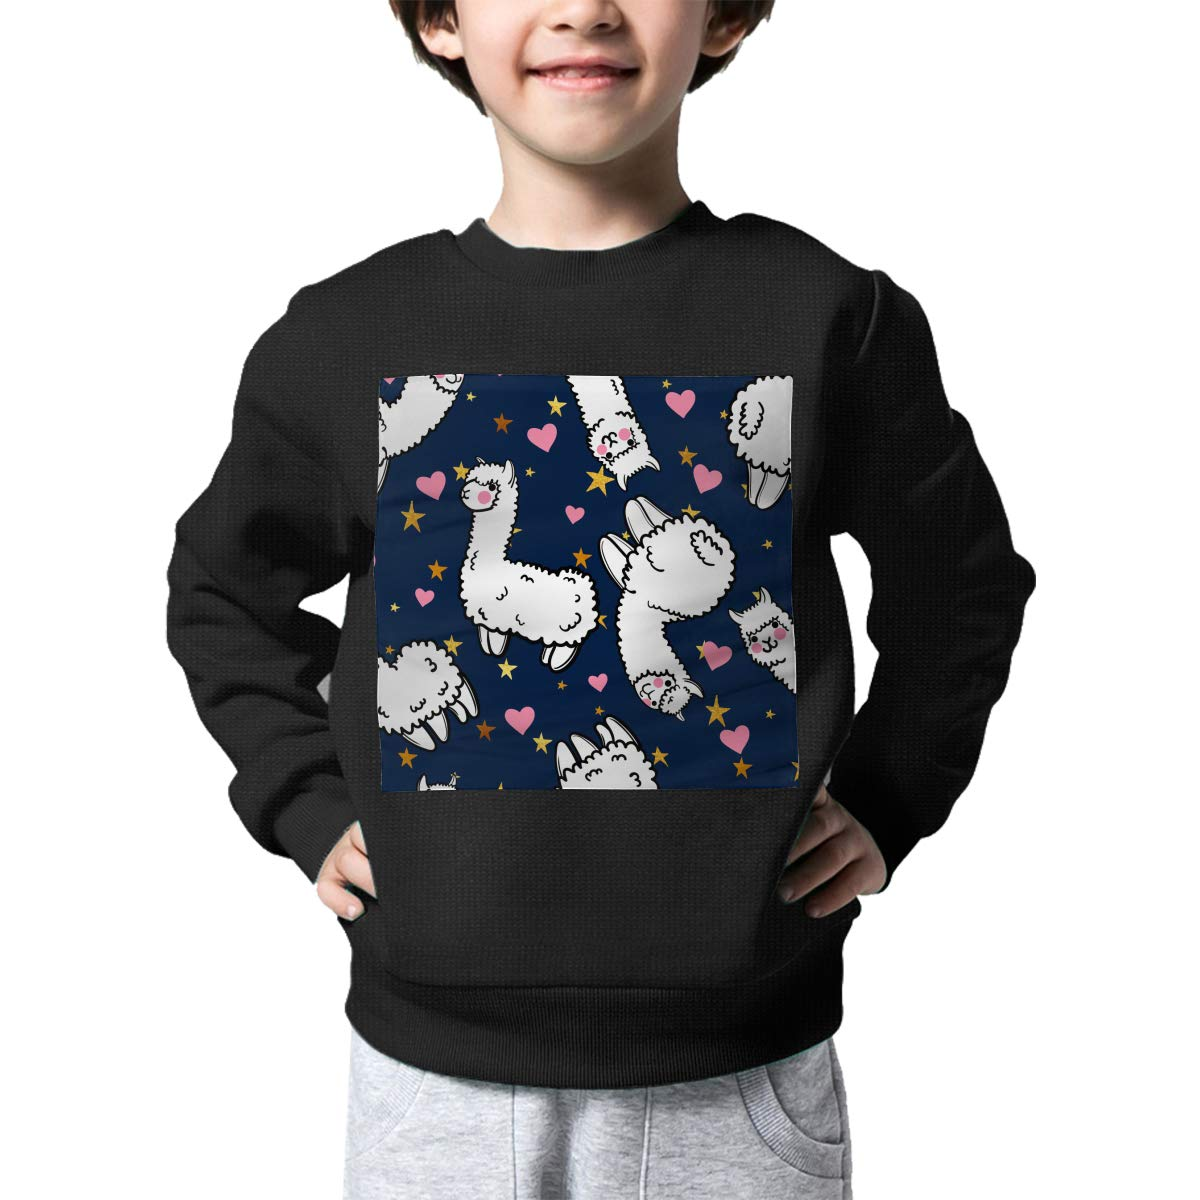 Cute Llama Printed Toddler Childrens Crew Neck Sweater Long Sleeve Cute Knit Jumper Top